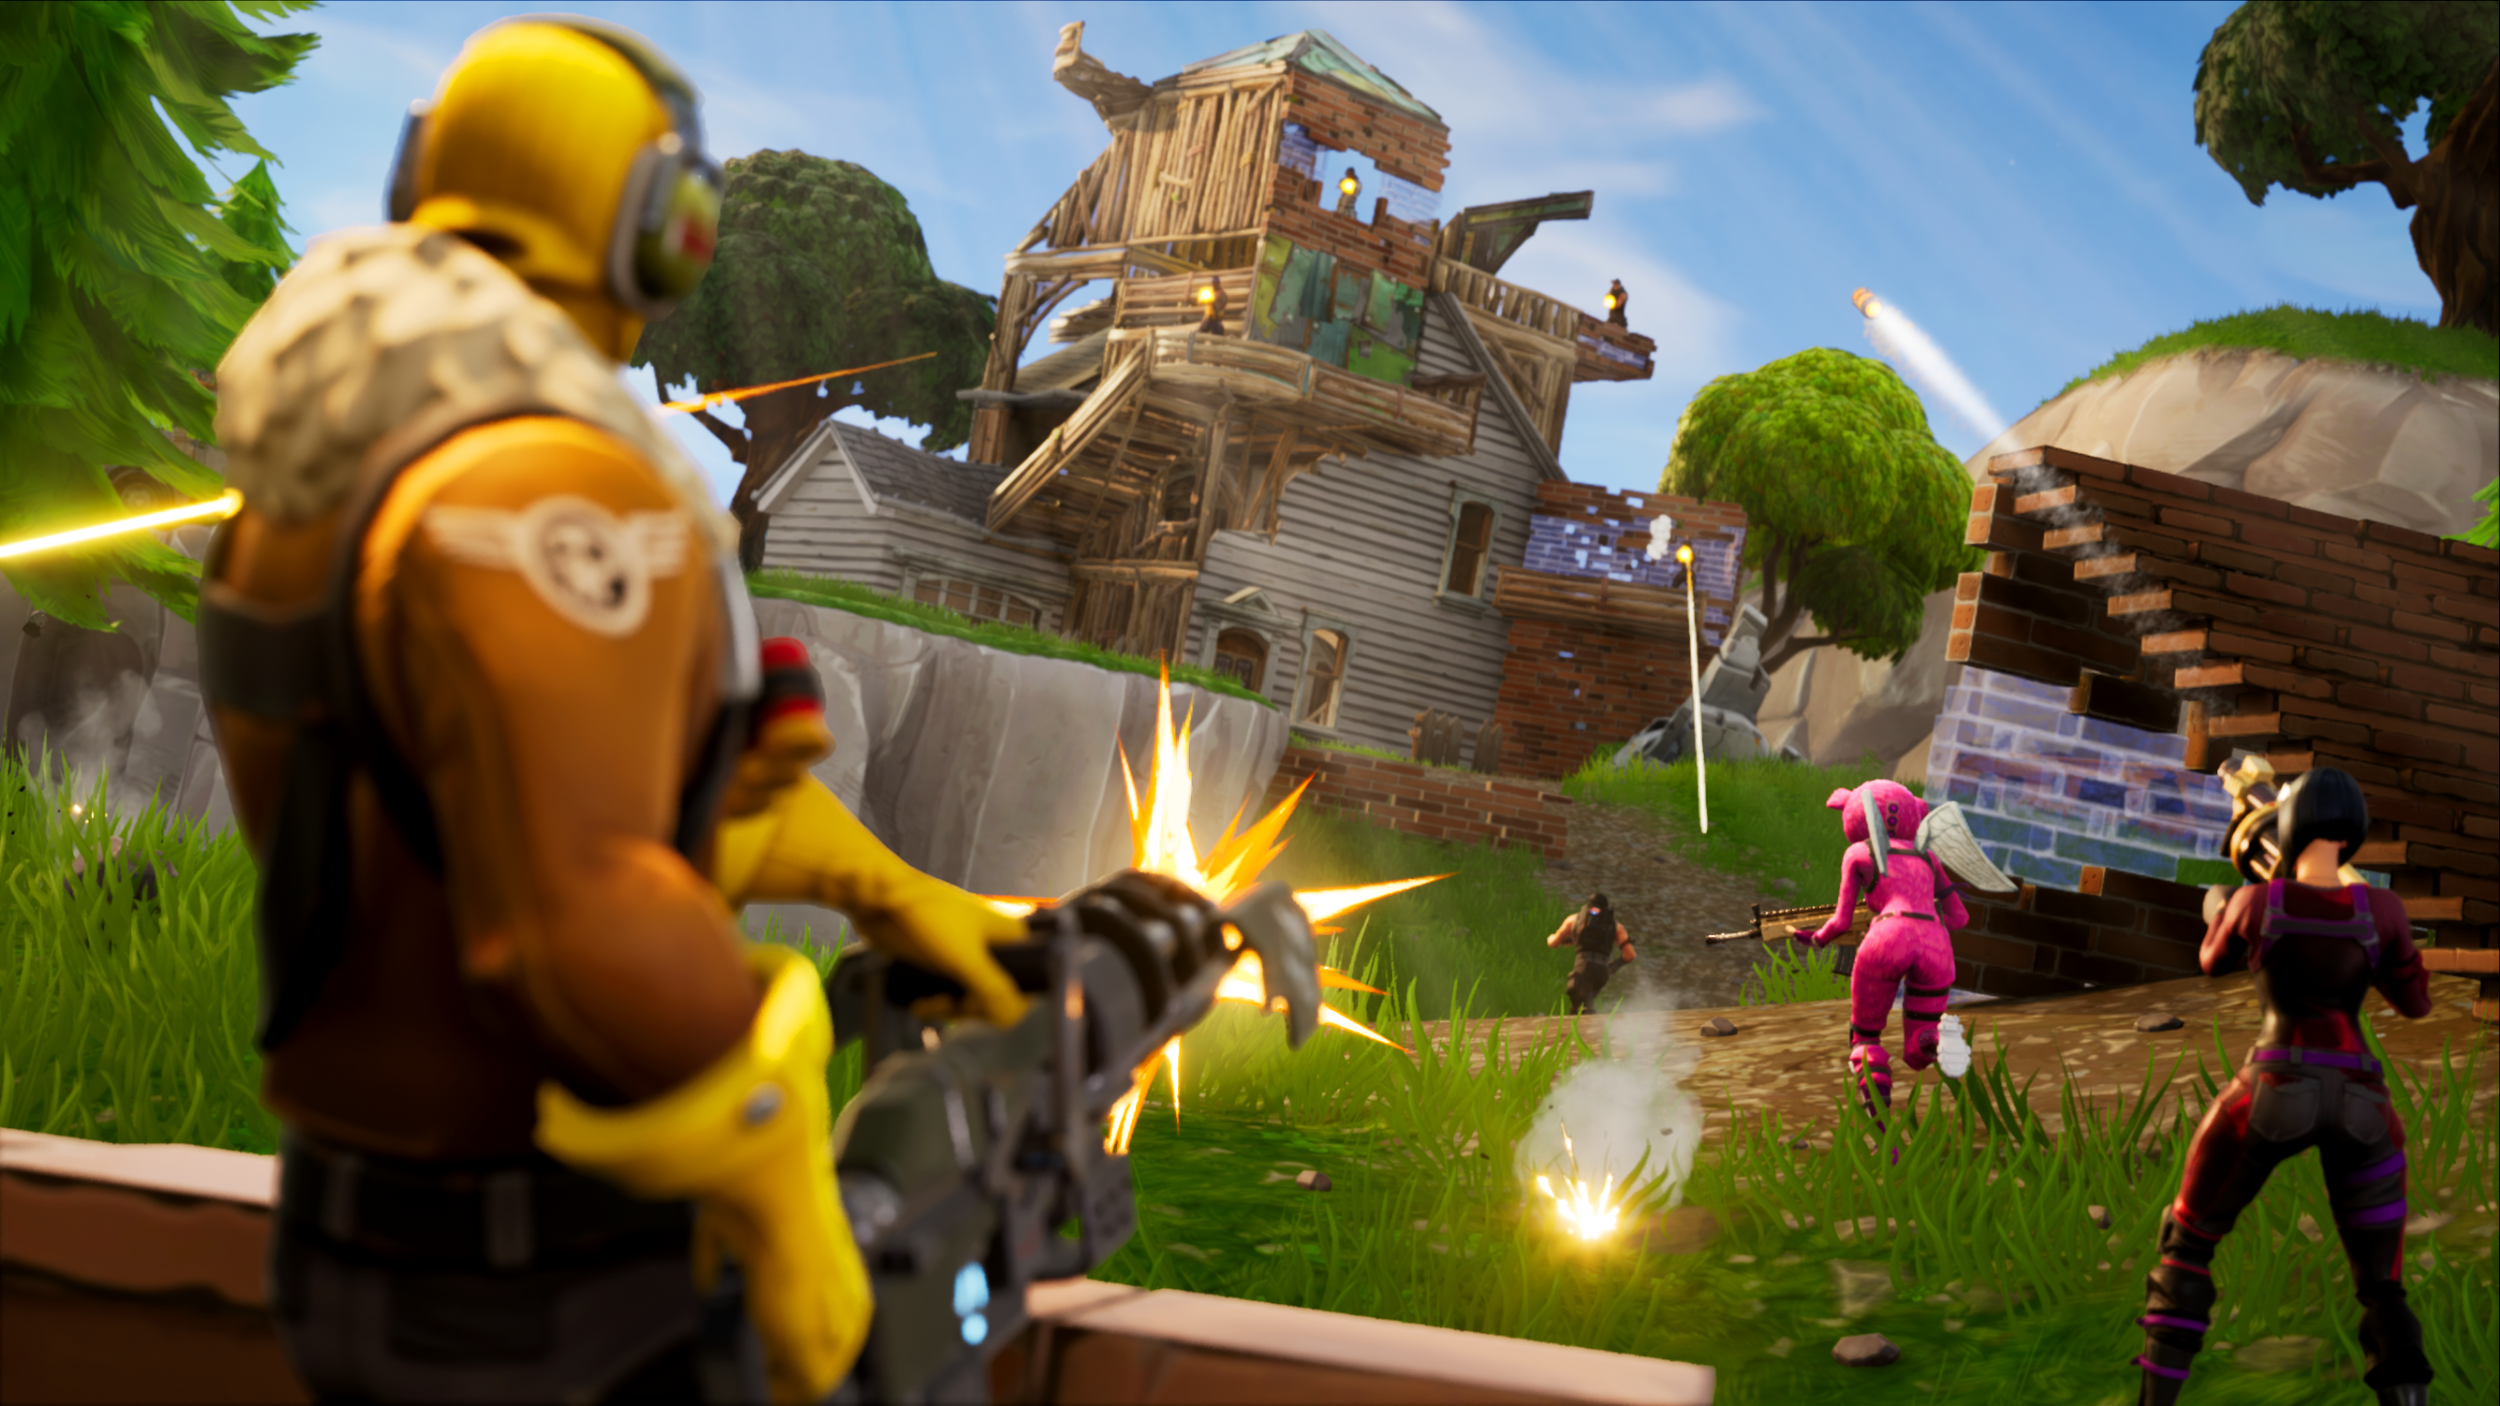 Fortnite' LTM Creator Contest Announced - How To Enter